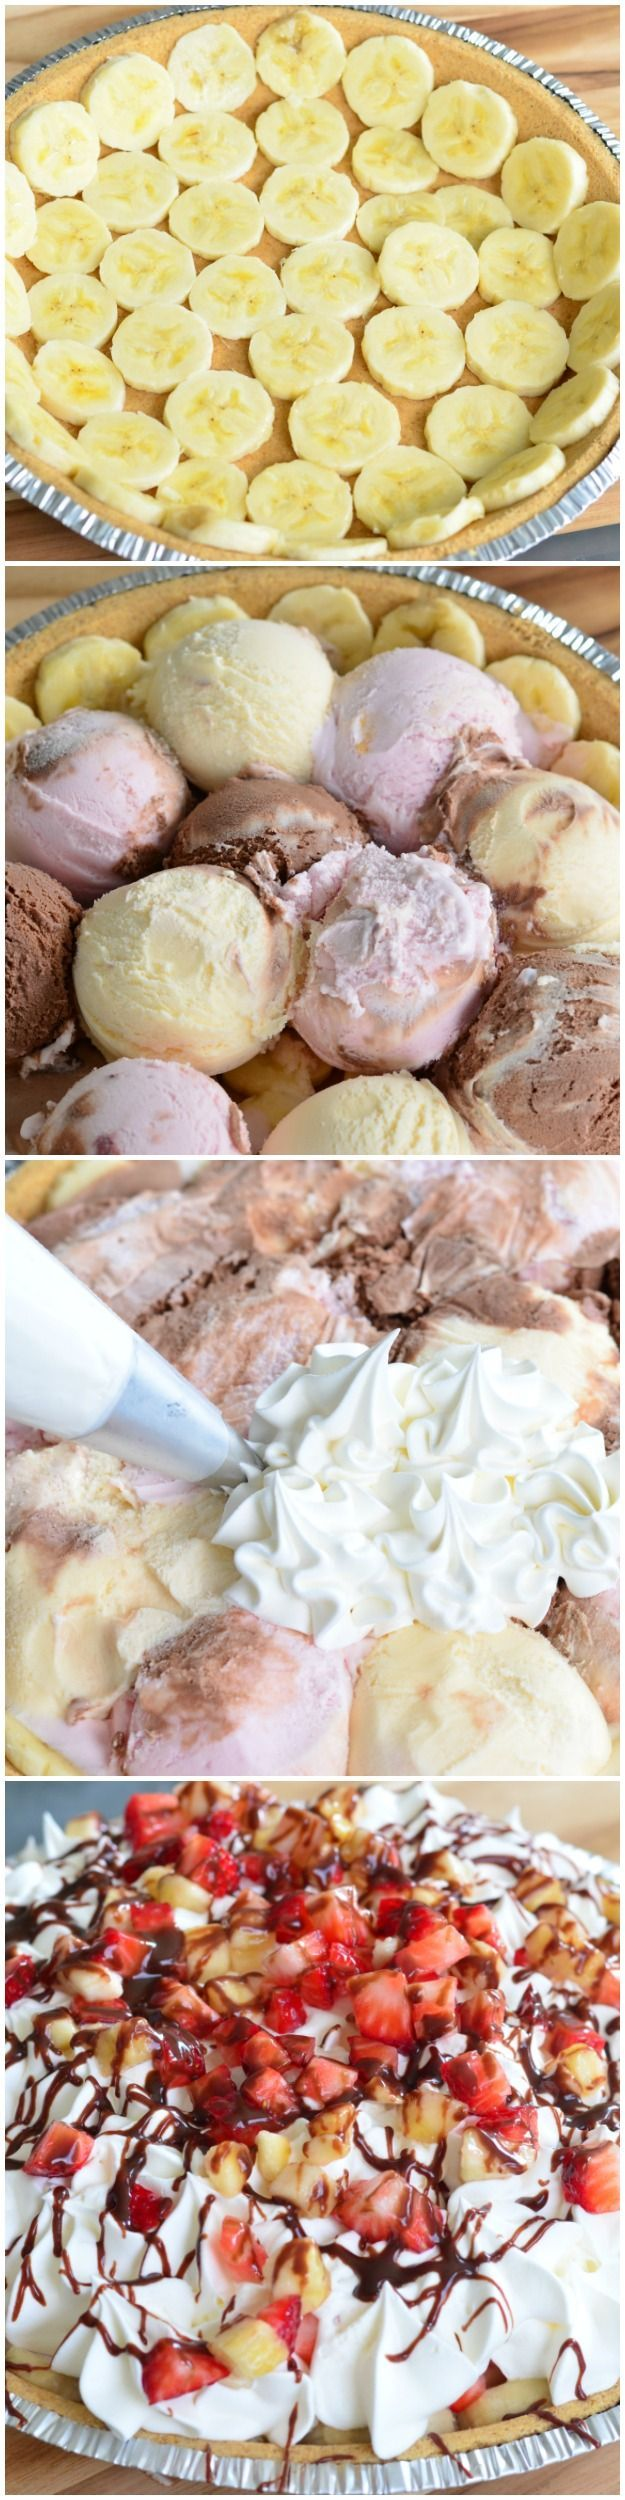 This Banana Split Ice Cream Pie is a SUPER simple and super delicious summer dessert made with three ice cream flavors, whipped cream, fruit and chocolate.